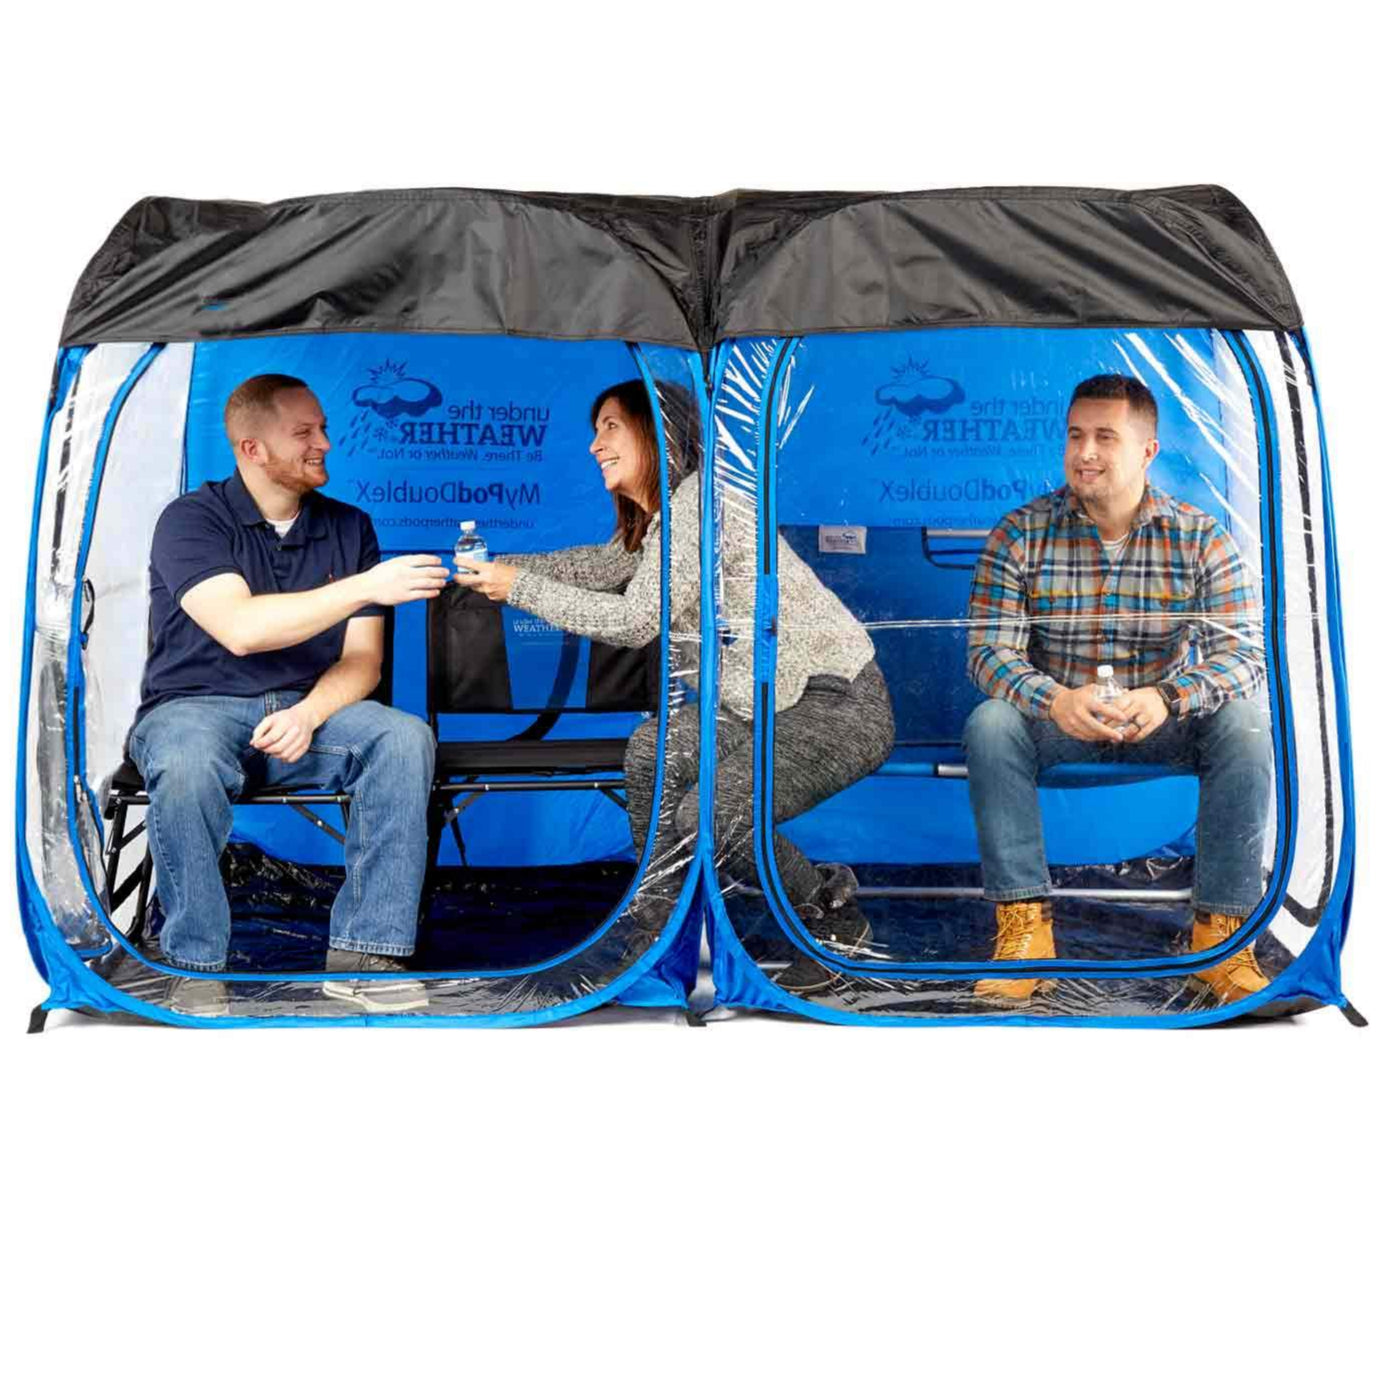 ConnectUp 2 Roof for MyPod 2XL - Under the Weather® - Personal pop-up sports tent for mom, dad, kids, parents - Perfect for soccer, baseball, softball, football, youth team sports - As Seen on Shark Tank